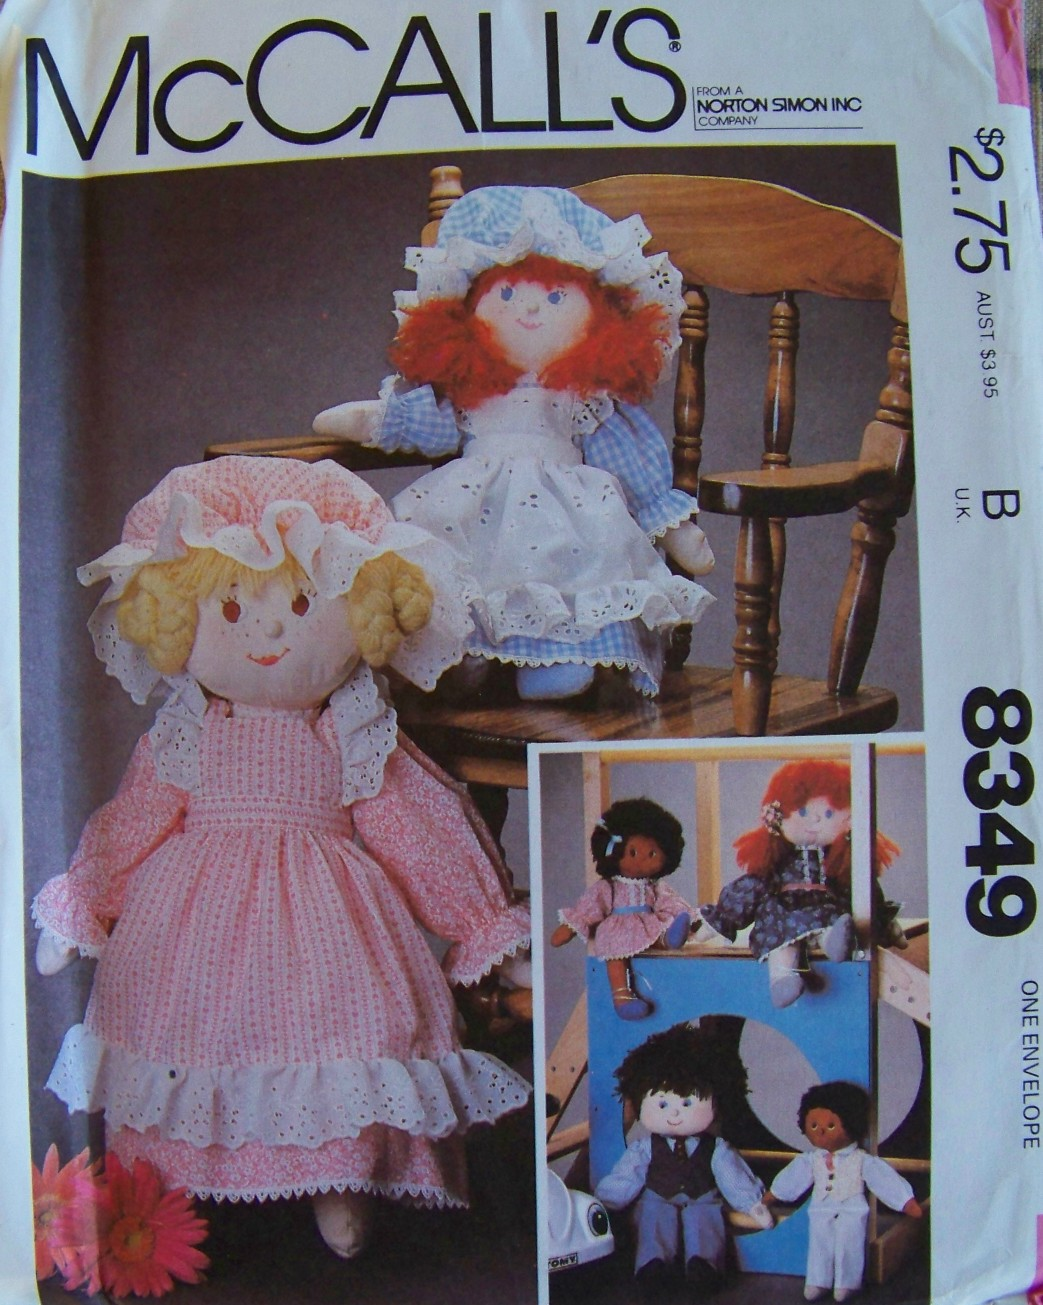 photograph relating to Printable Rag Doll Patterns referred to as McCalls 8349 A Basic Sewing Styles FANDOM run